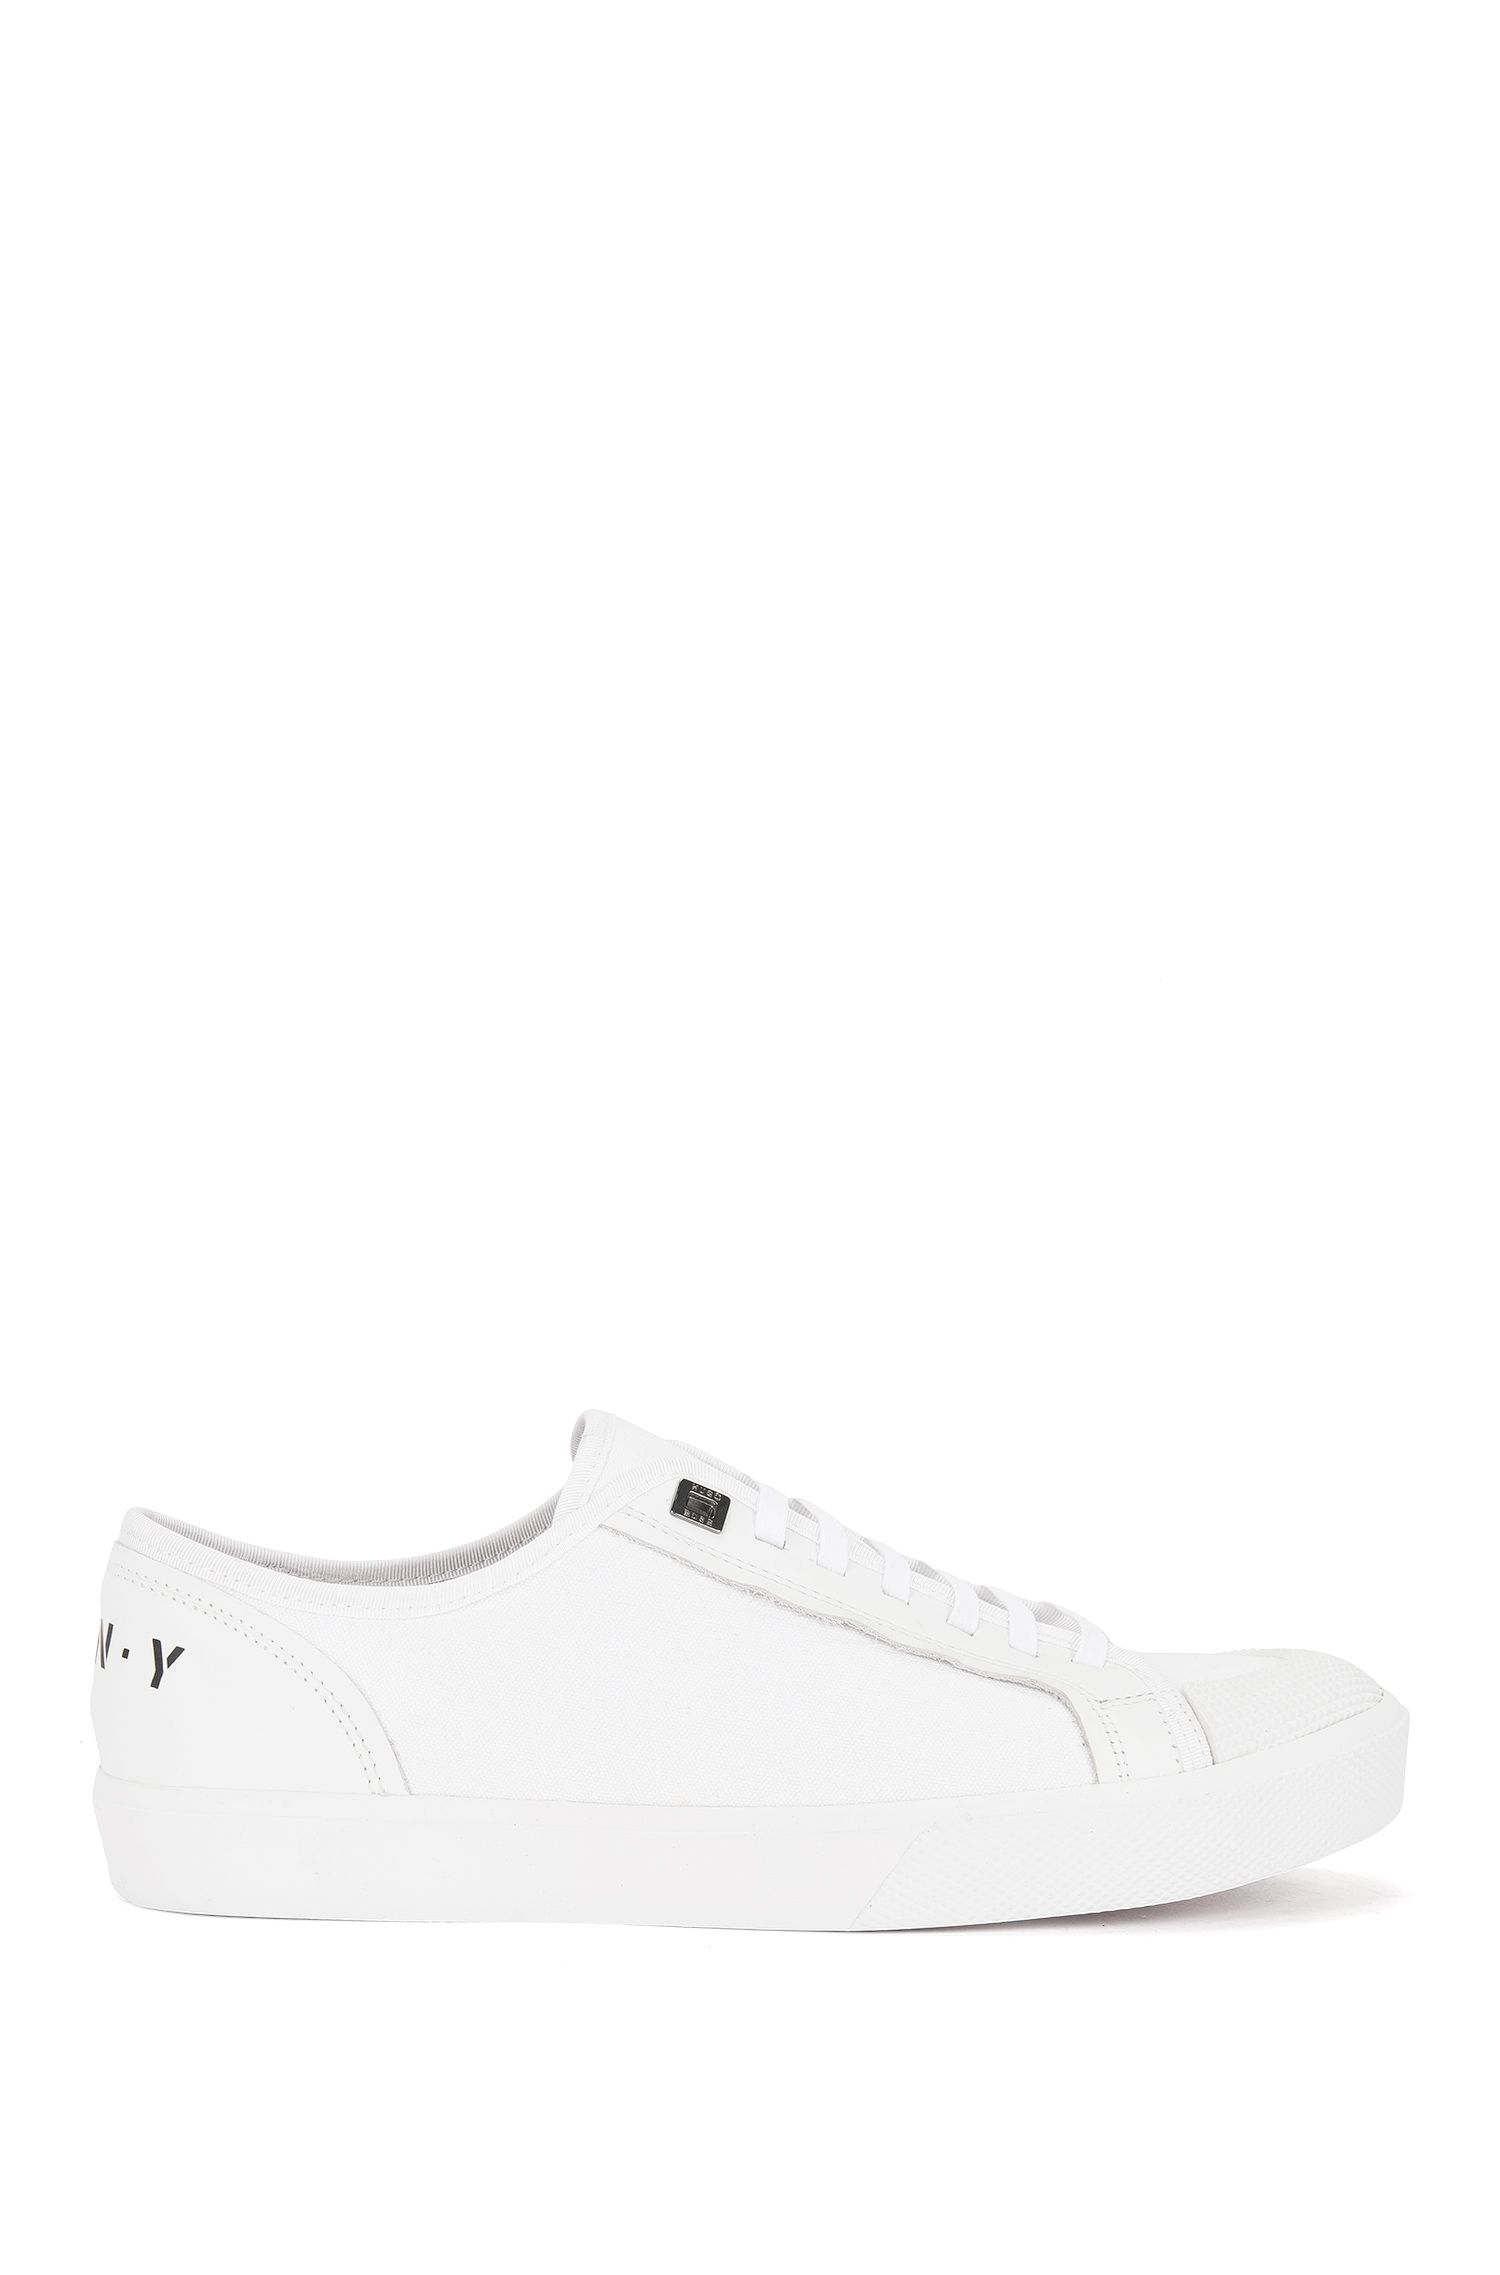 Baskets basses Runway Edition en coton et cuir195.00BOSS